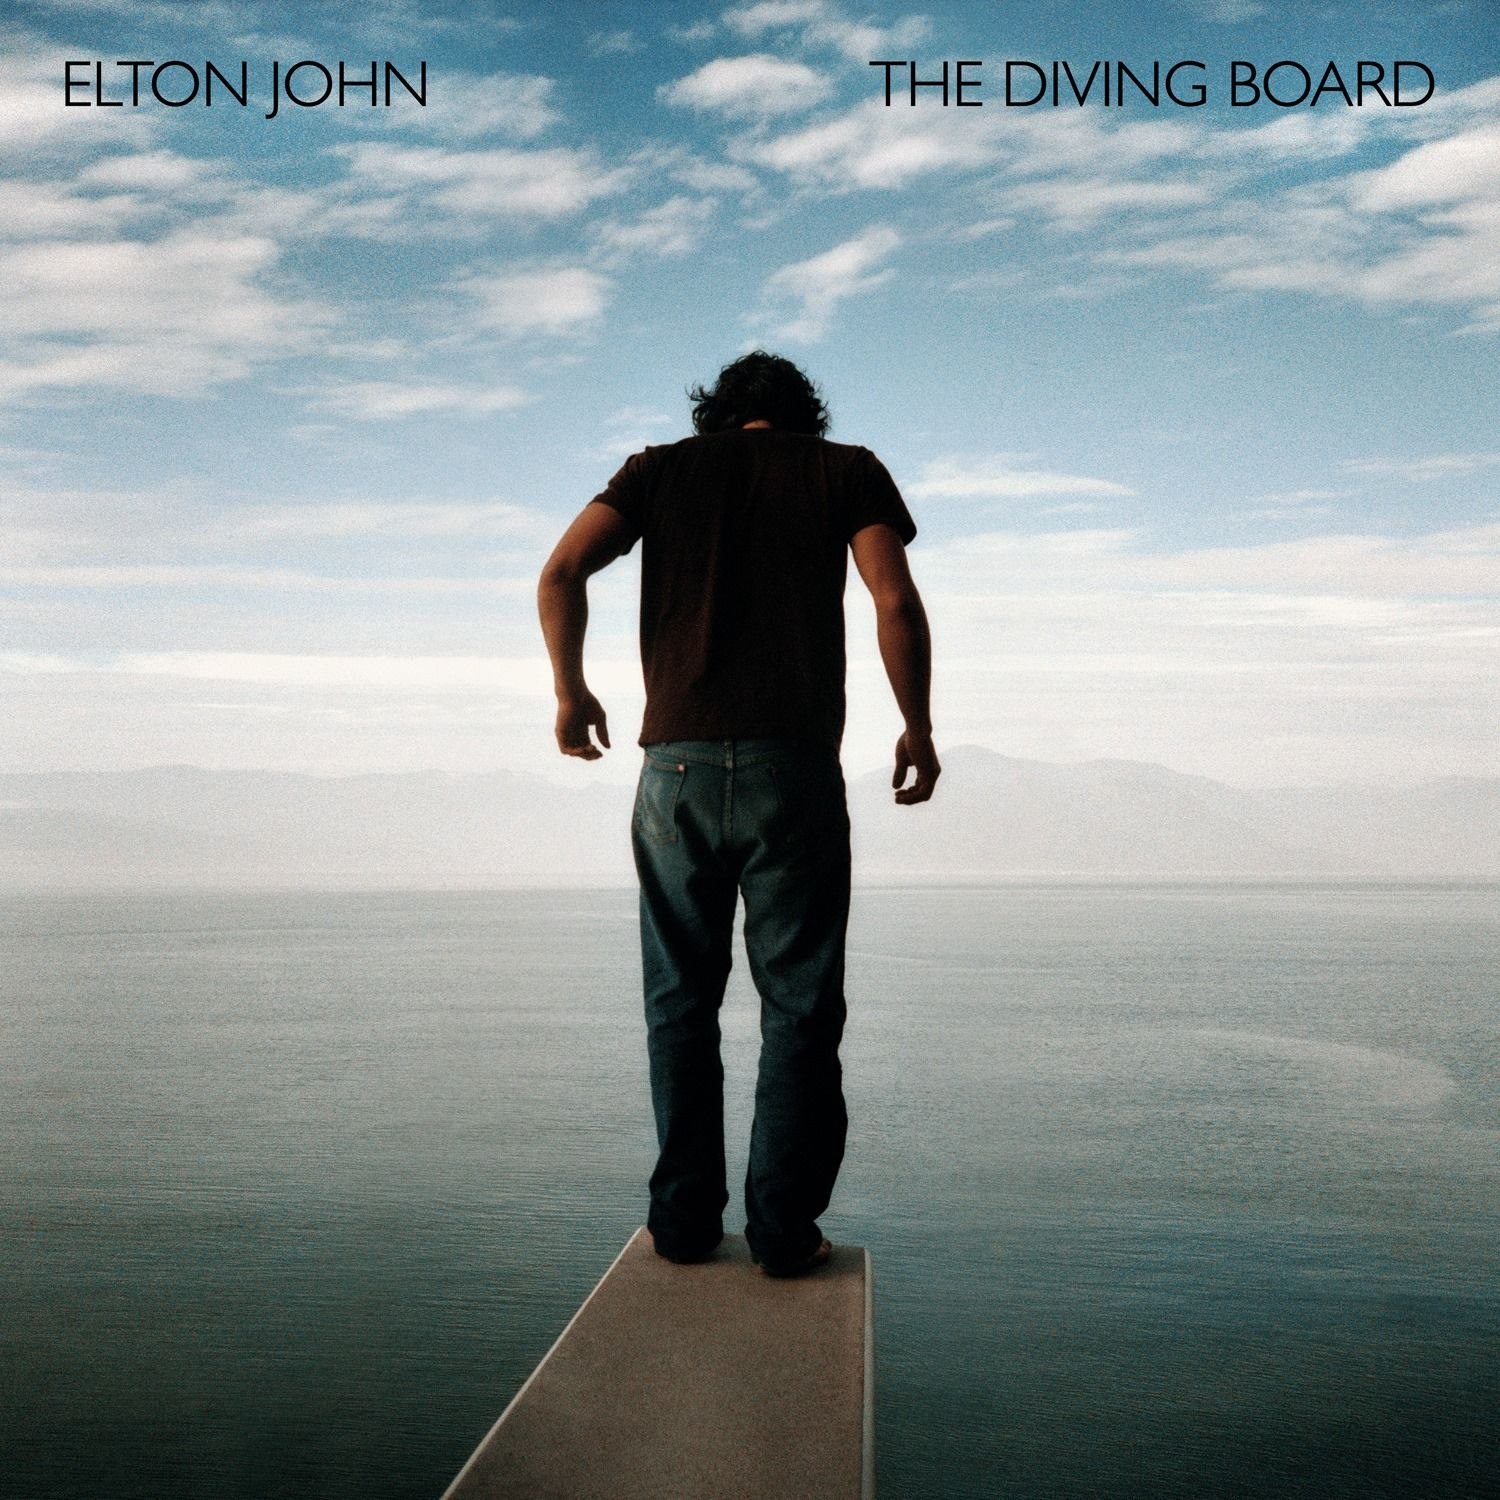 Elton John - The Diving Board album cover